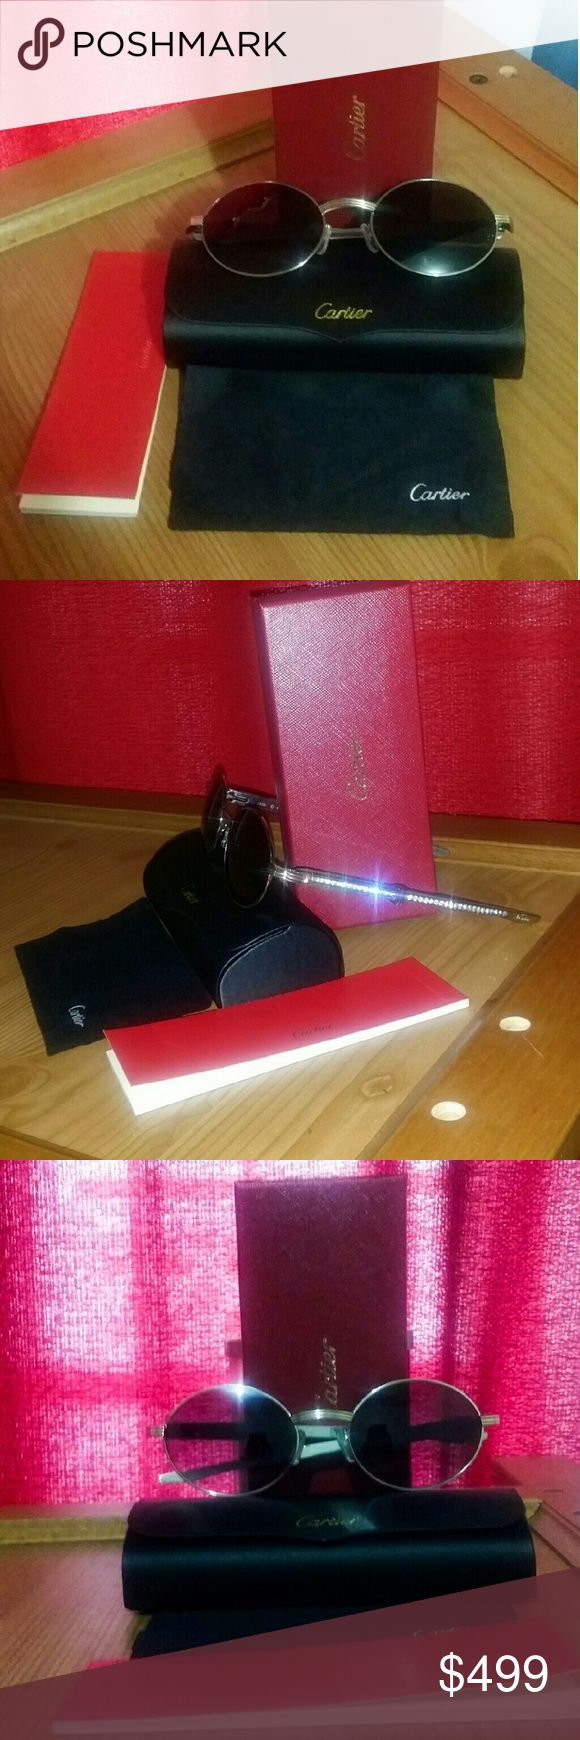 Limited Edition Cartier Luxury sunglasses Limited Edition Cartier Luxury sunglasses   BRAND NEW. Cartier Accessories Glasses